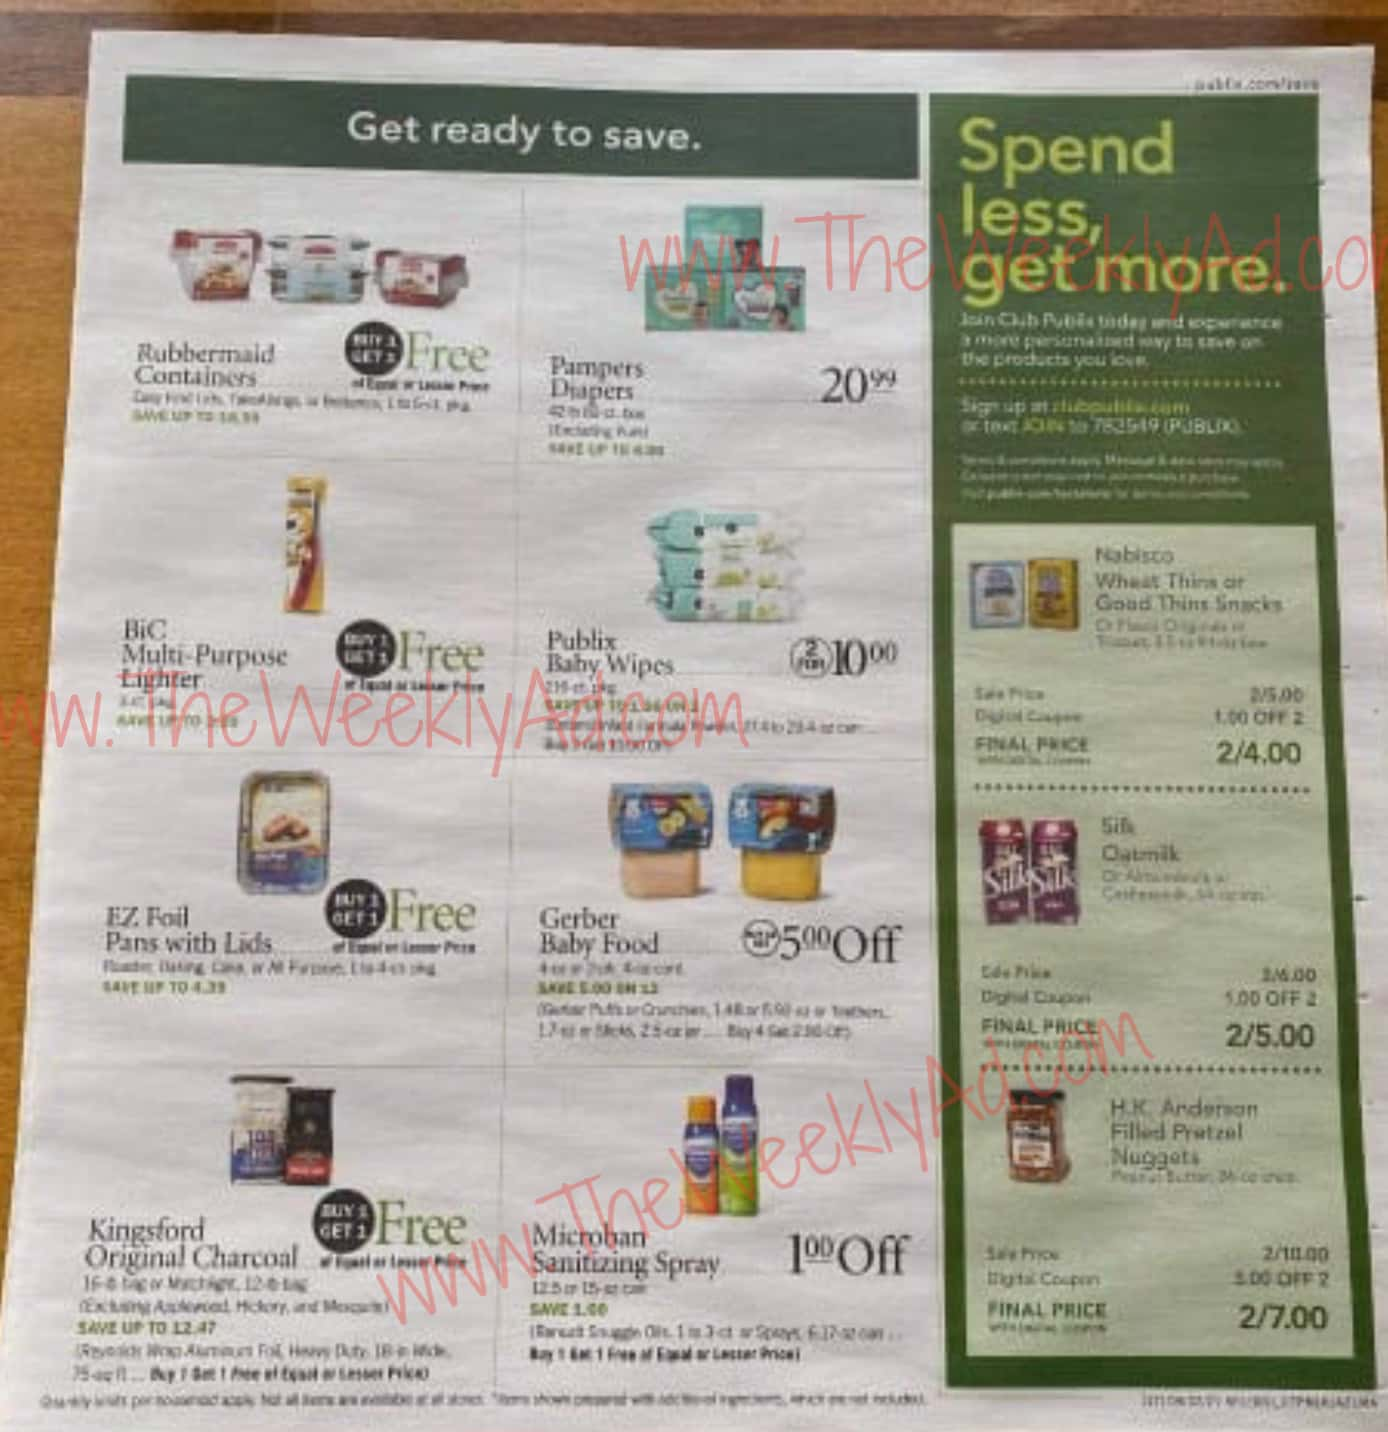 publix_weekly_ad_090121_17